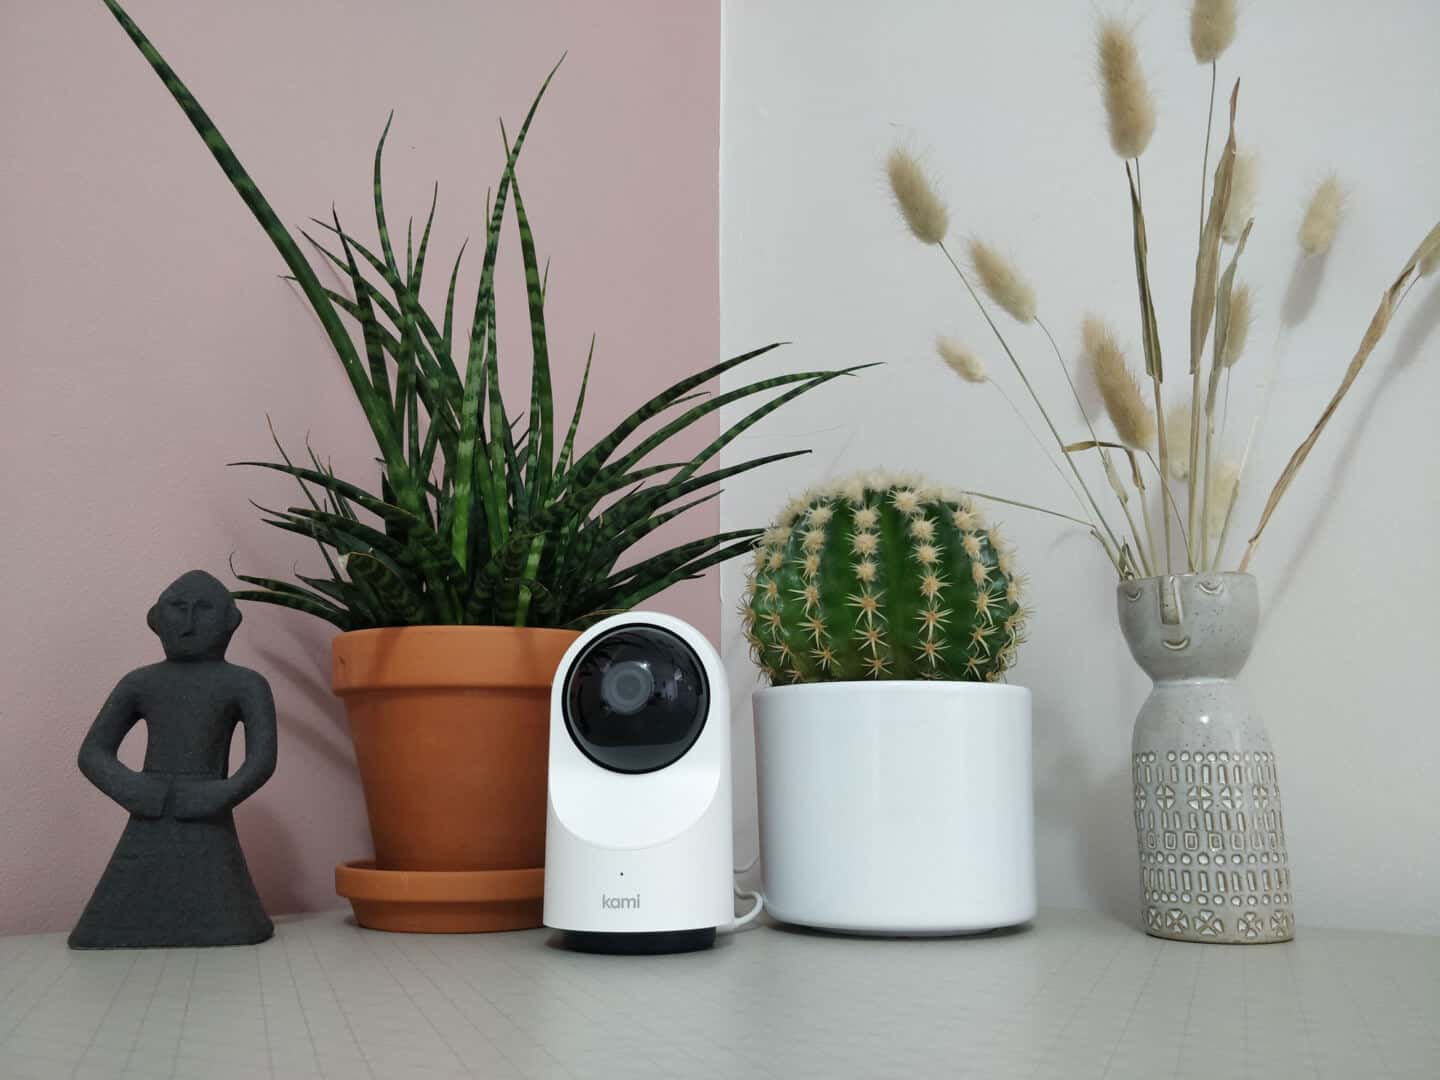 Kami indoor home security camera on a table between two plants and vase and a statue.